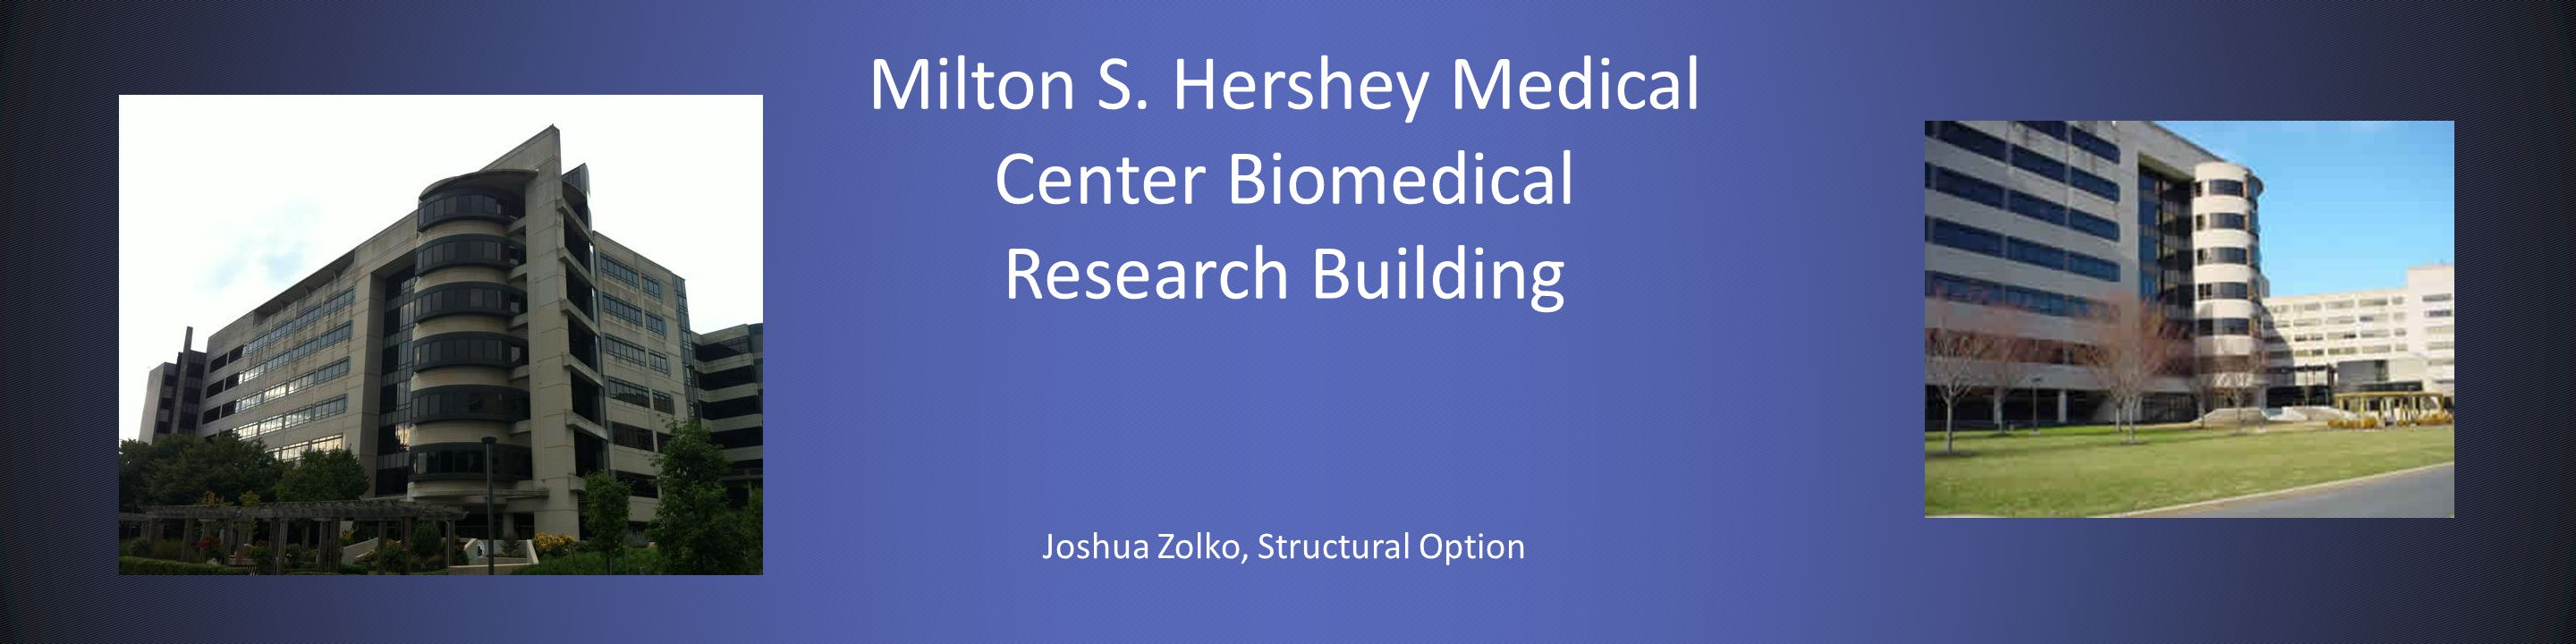 Milton S. Hershey Medical Center Biomedical Research Building Joshua Zolko, Structural Option